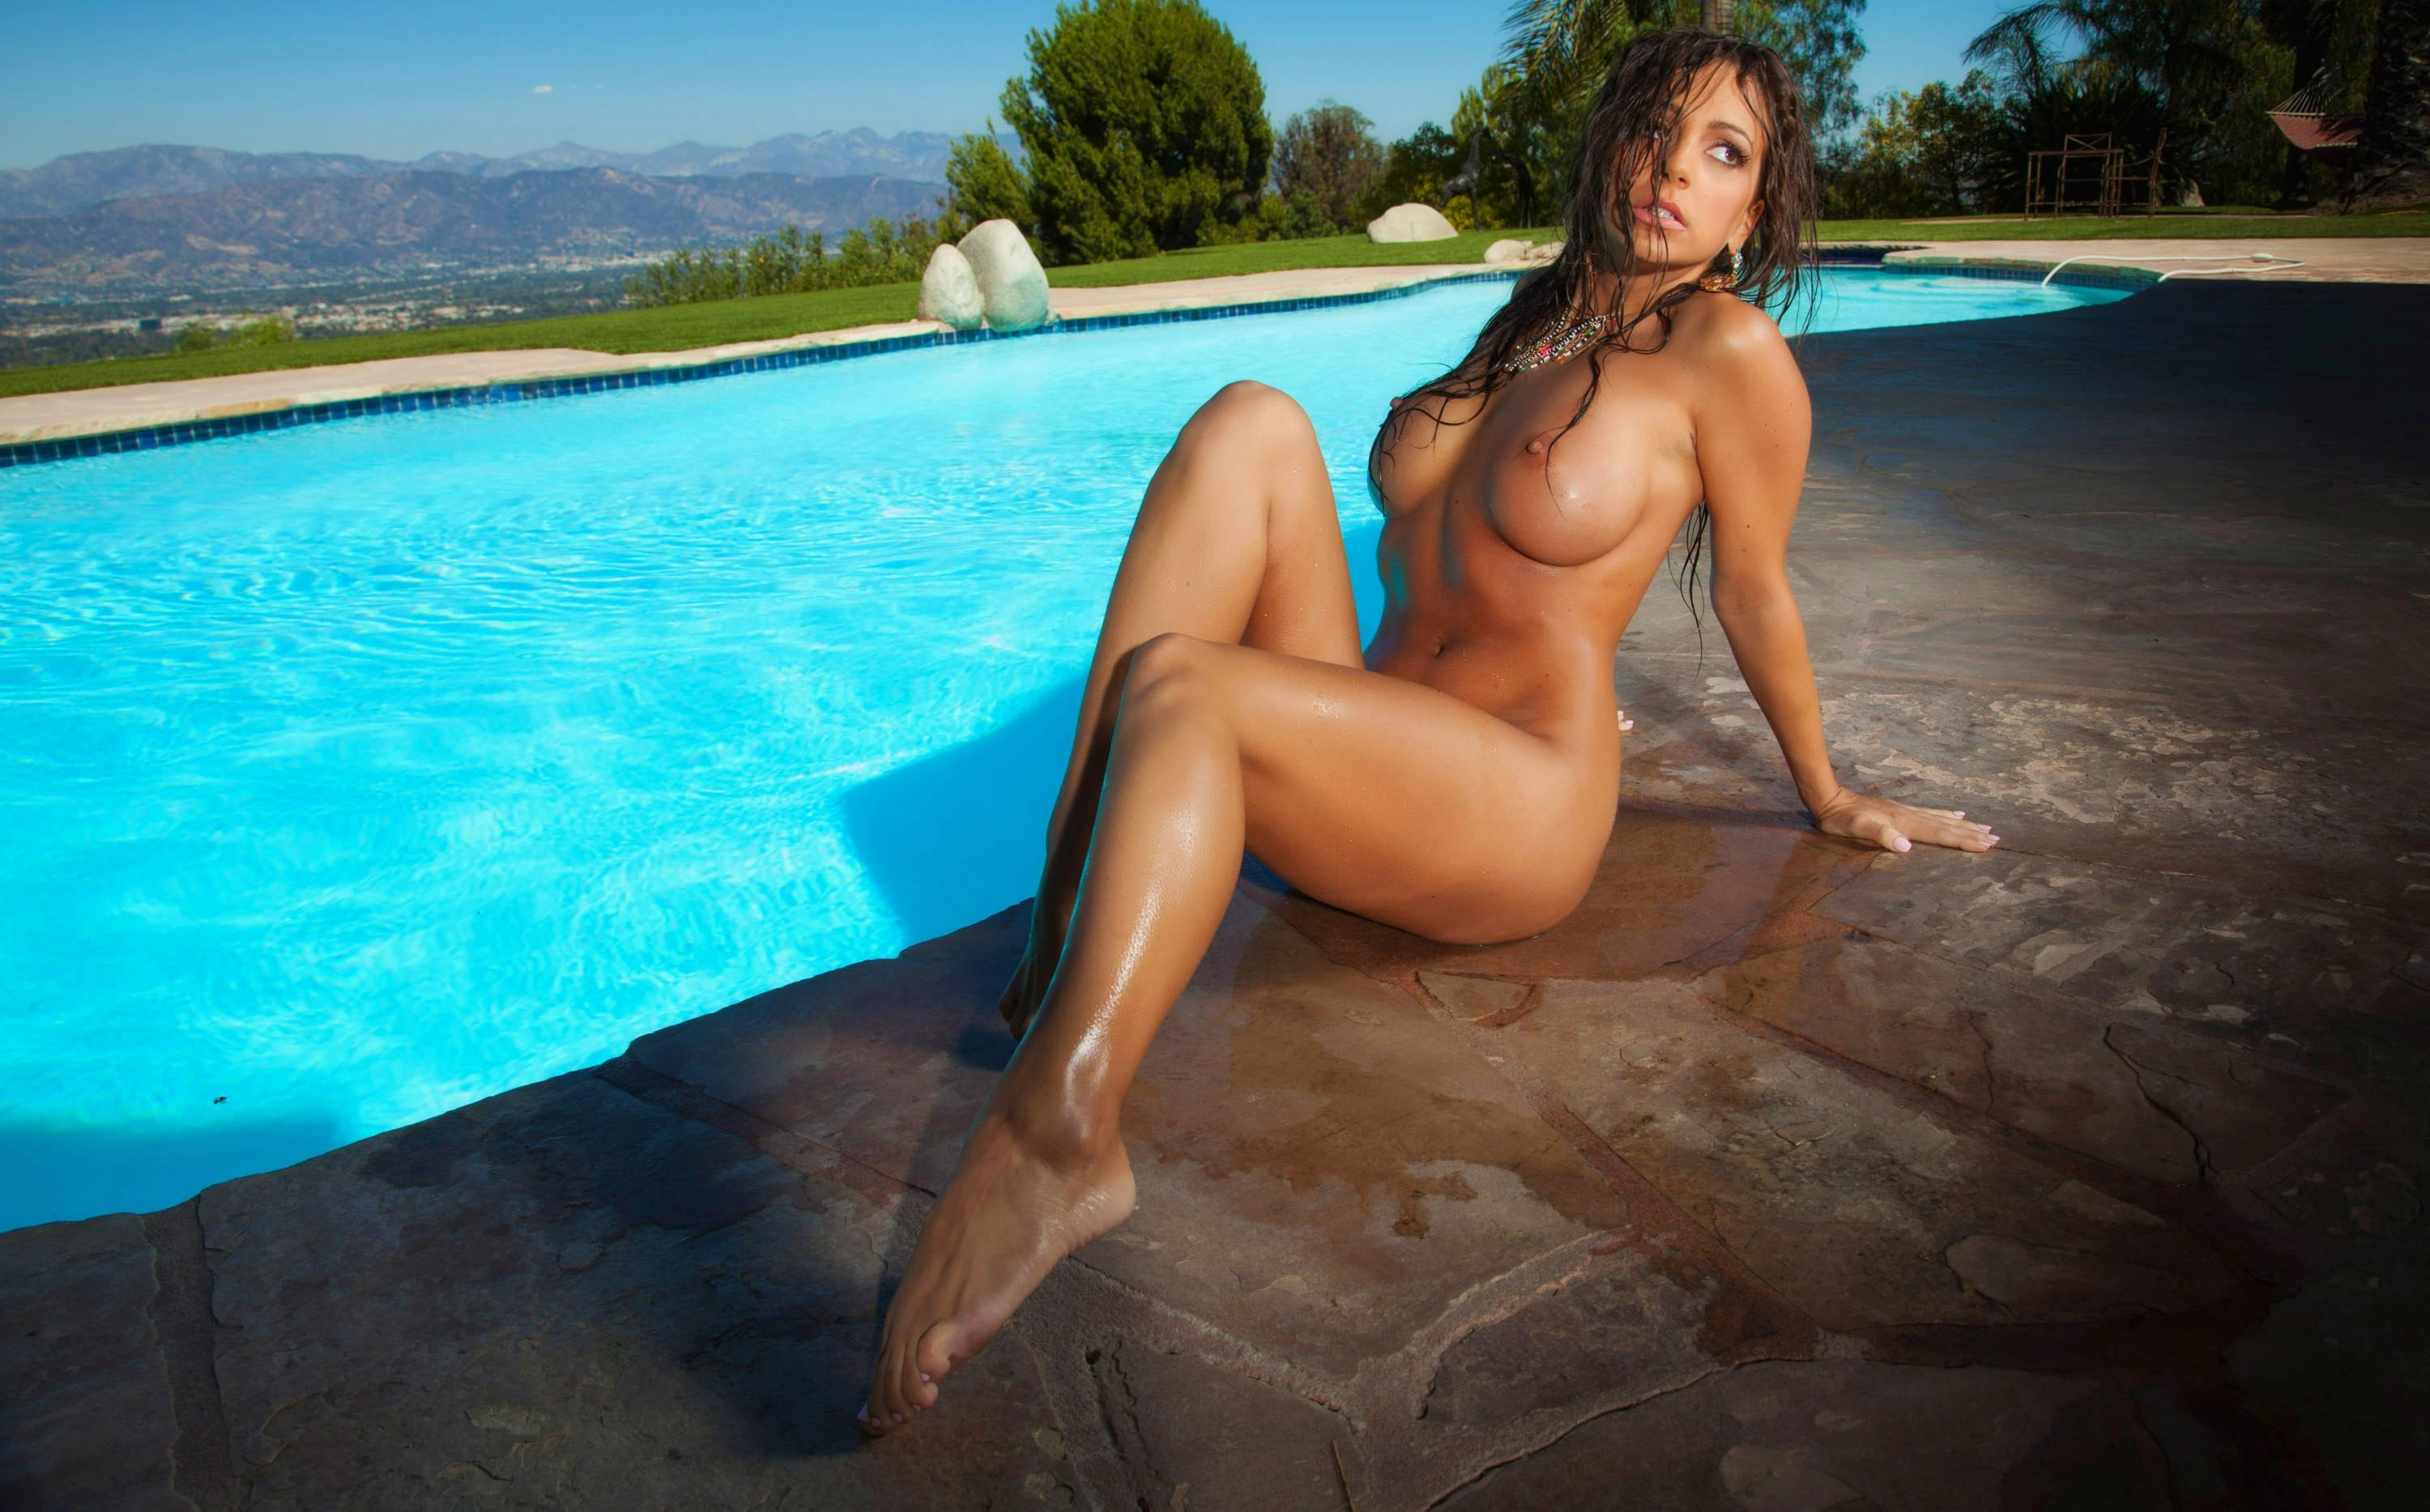 Free jessica lynn pictures, glamour models gone bad free sex gallery